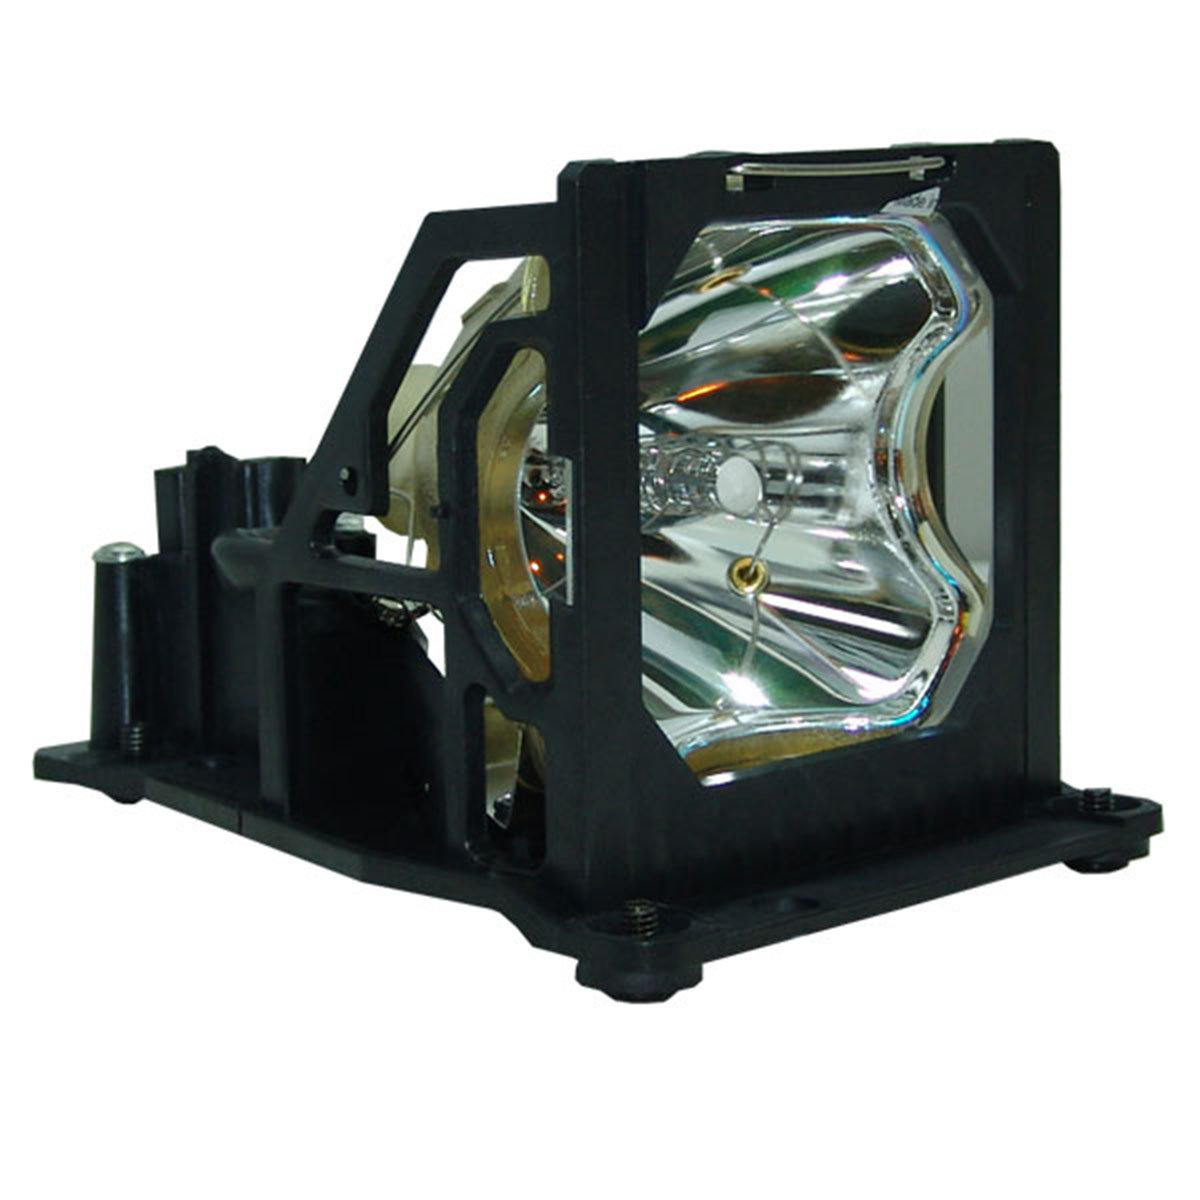 Primary image for Geha 60-267036 Compatible Projector Lamp Module